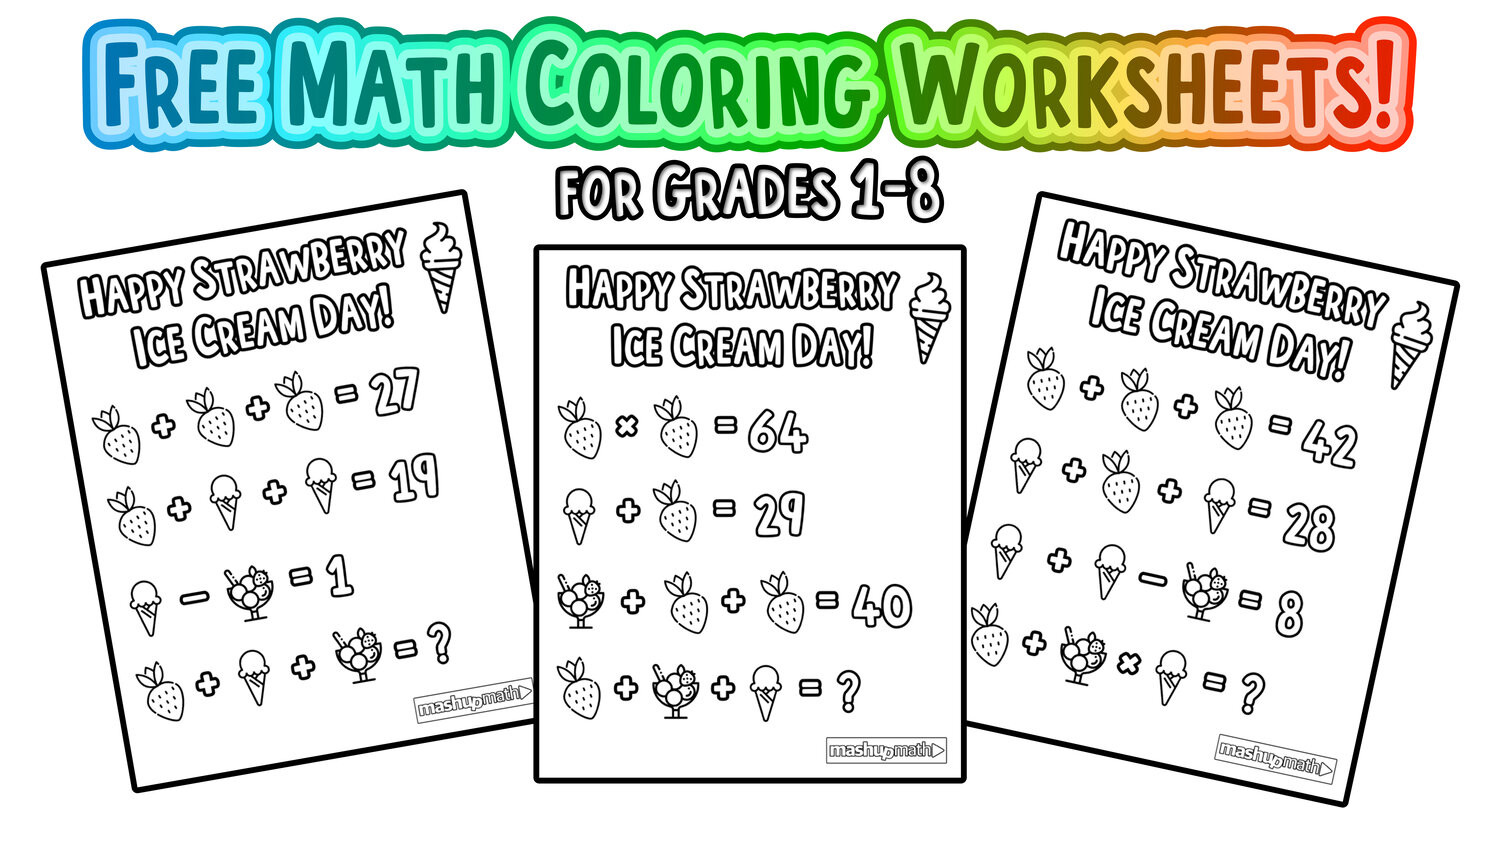 Math Coloring Worksheets 7th Grade Free Math Coloring Pages for Grades 1 8 — Mashup Math